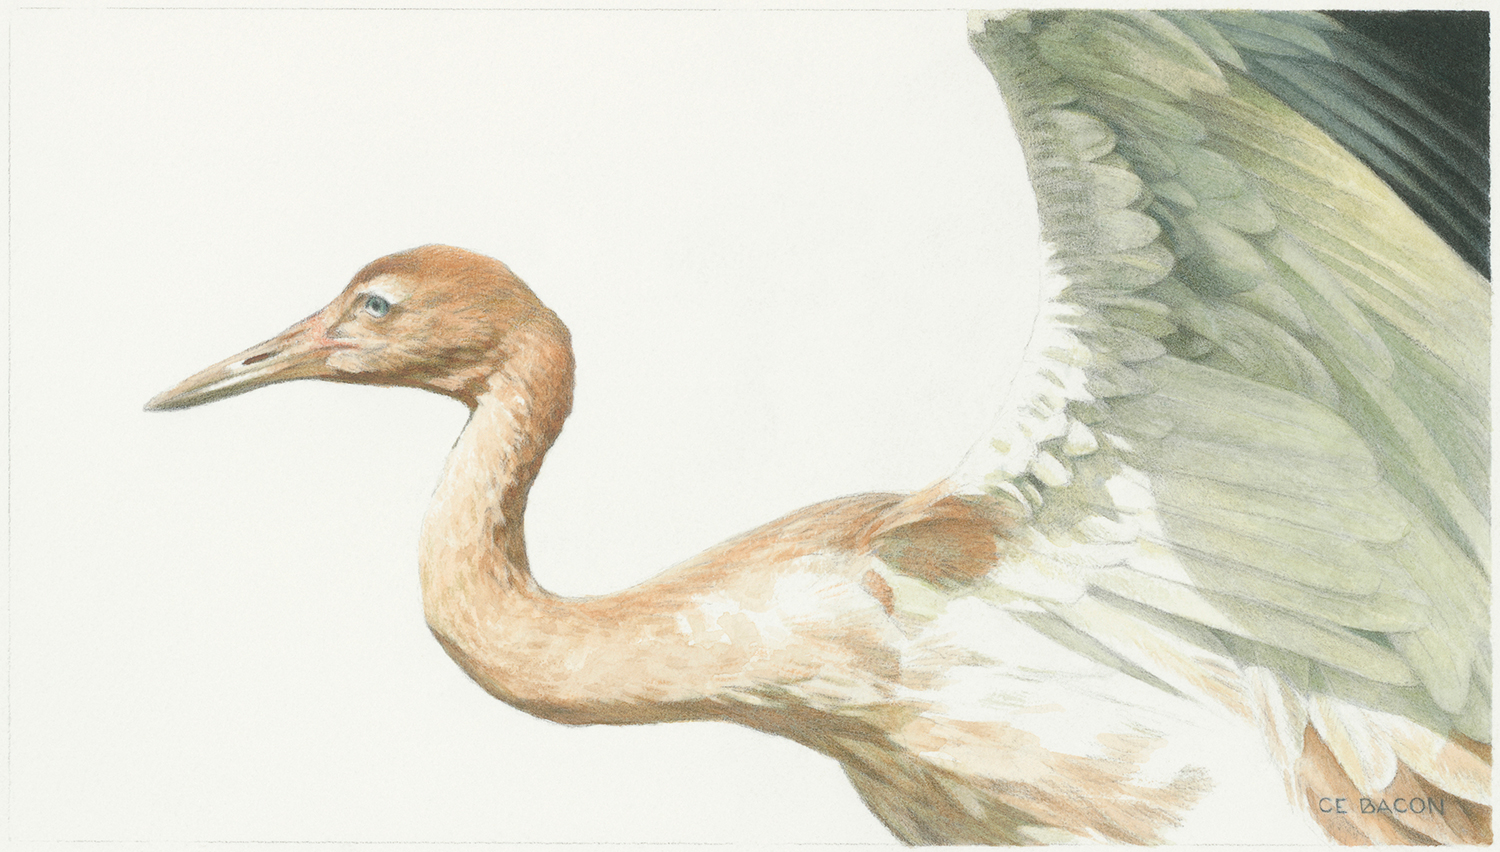 """'STUDY FOR YOUNG WHOOPING CRANE' 2018 •watercolour on arches (cold press) paper •17.15cm x 29.84cm •6.75""""x 11.75"""""""